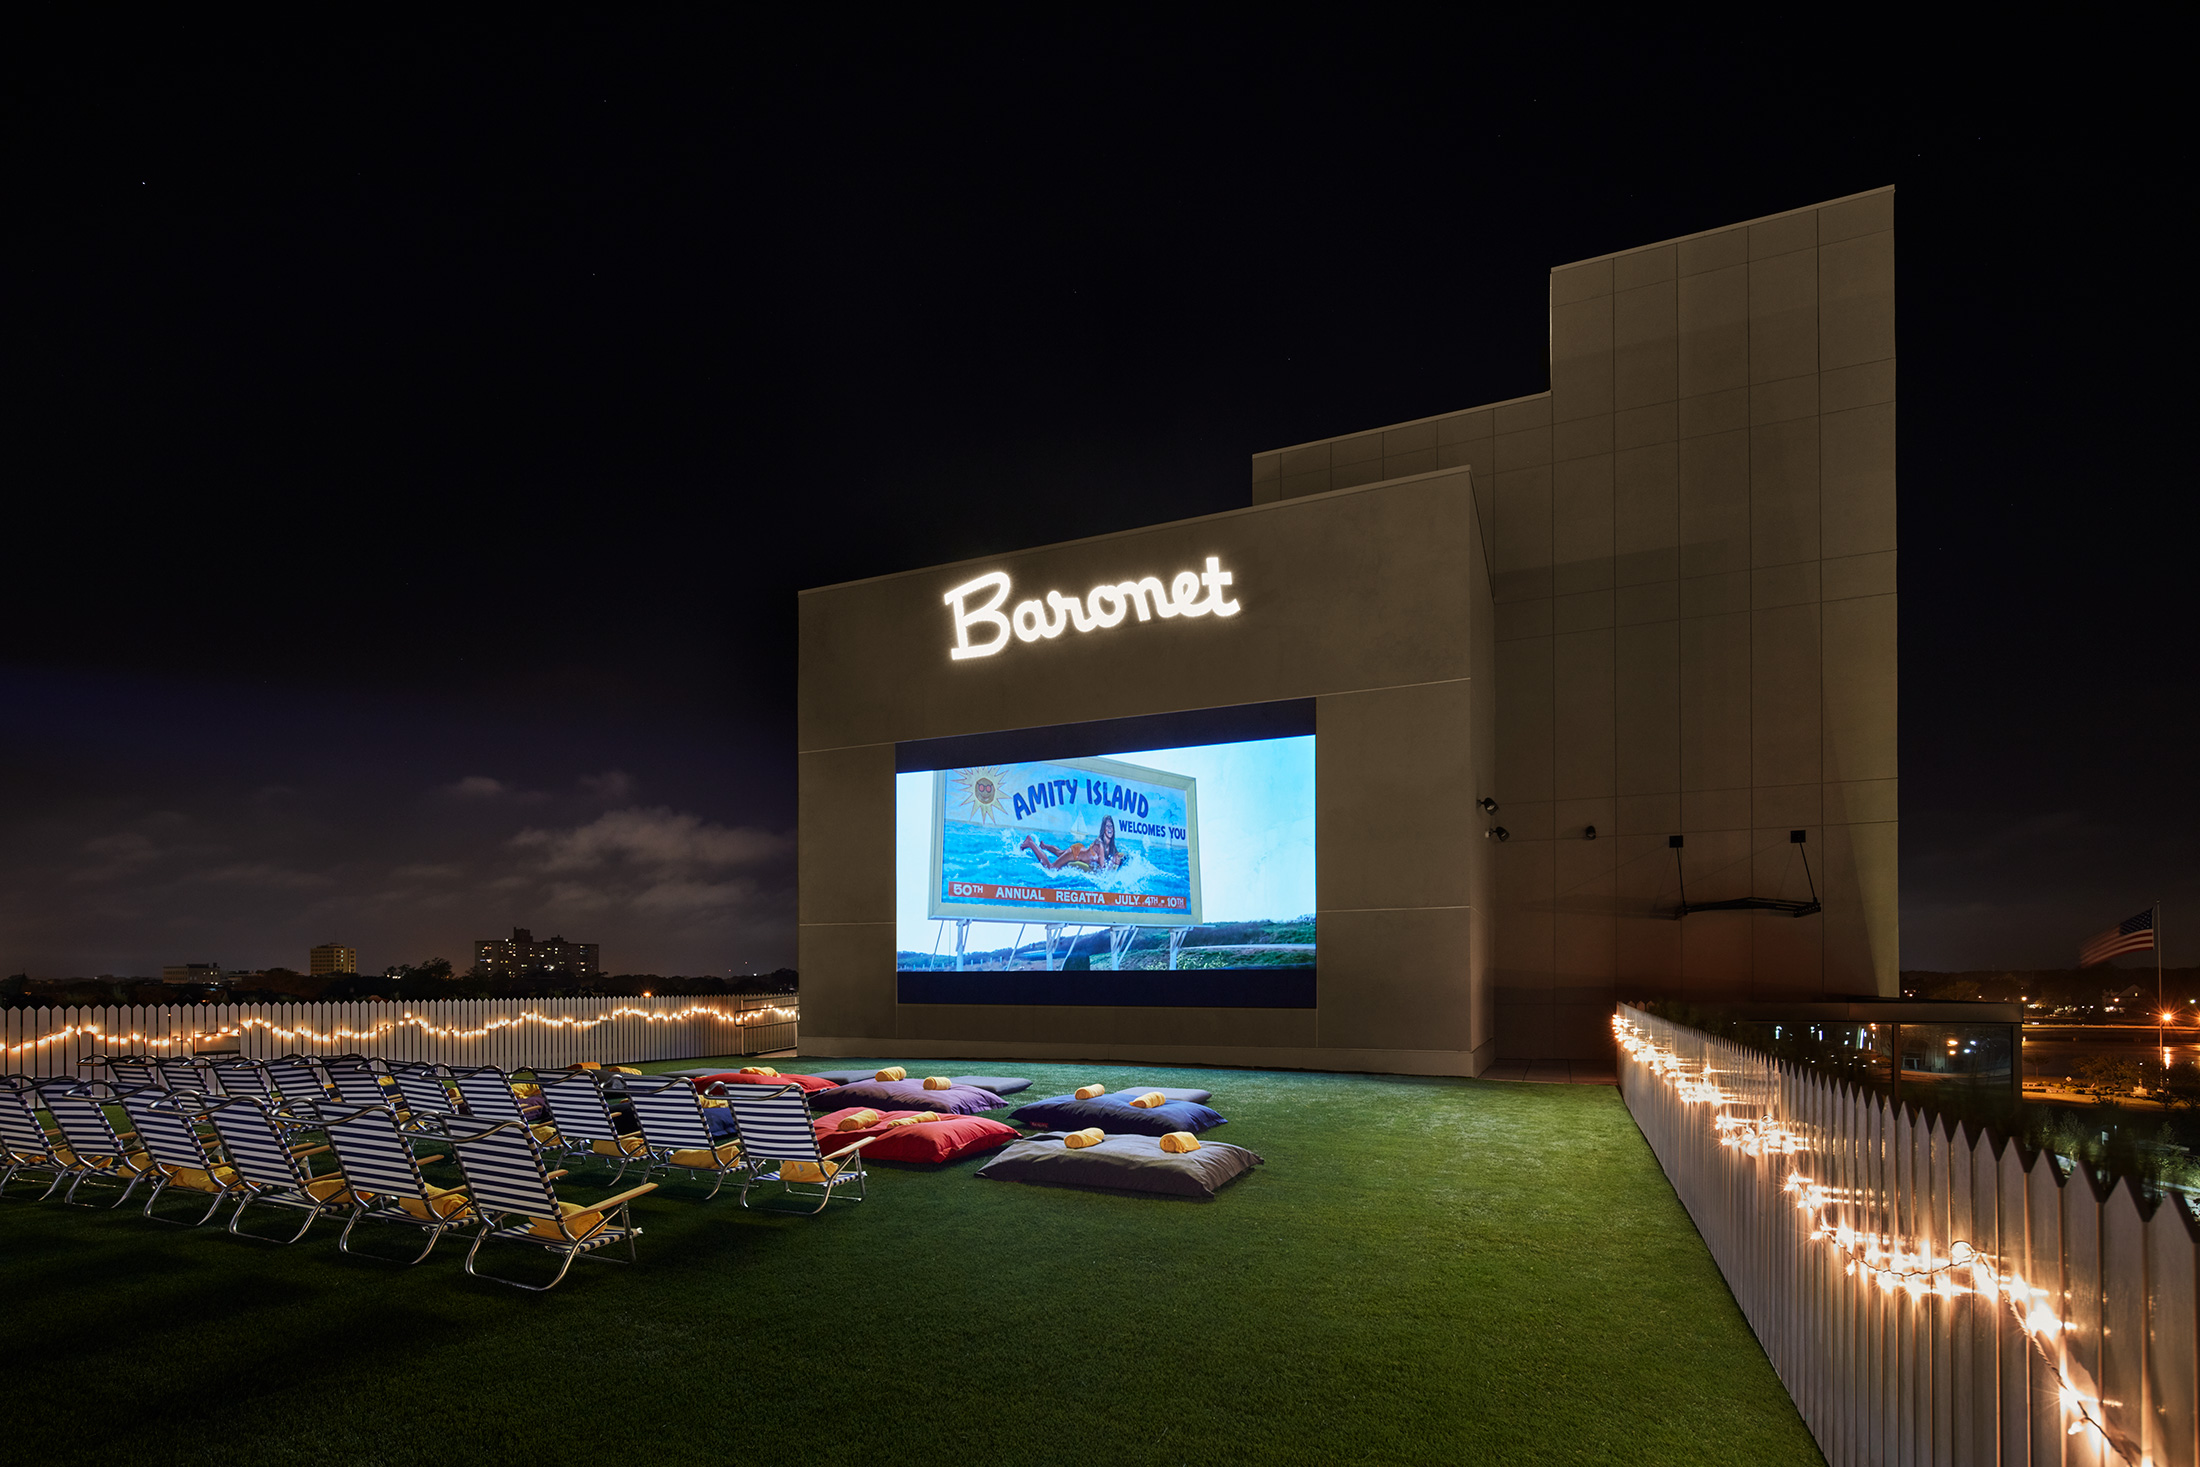 The Baronet outdoor cinema, on the roof of the hotel.